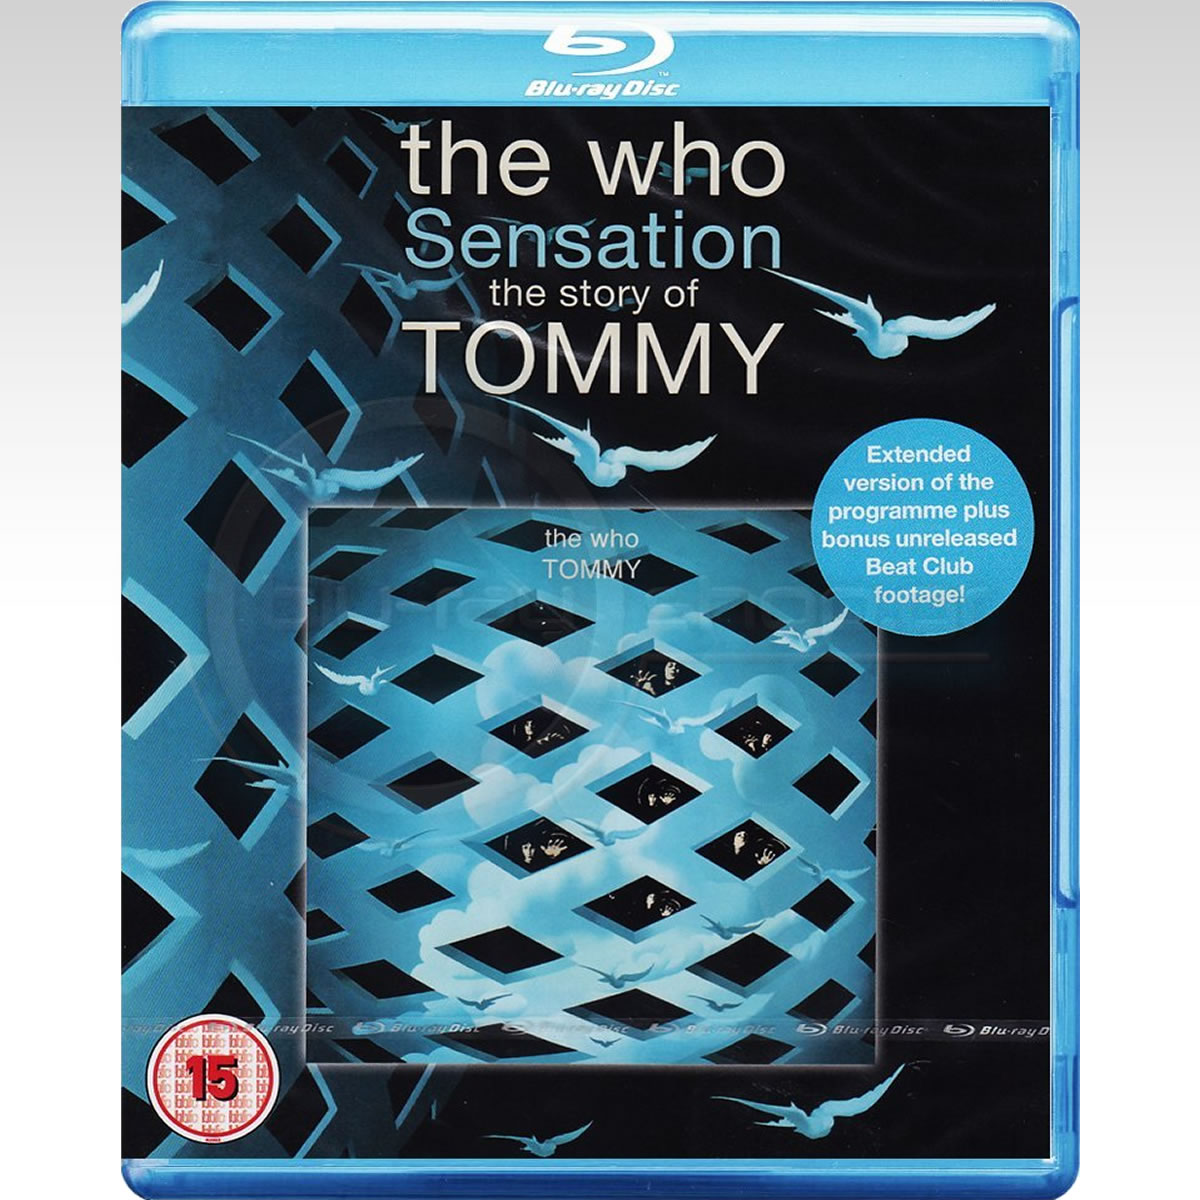 THE WHO : SENSATION - THE STORY OF TOMMY (BLU-RAY)